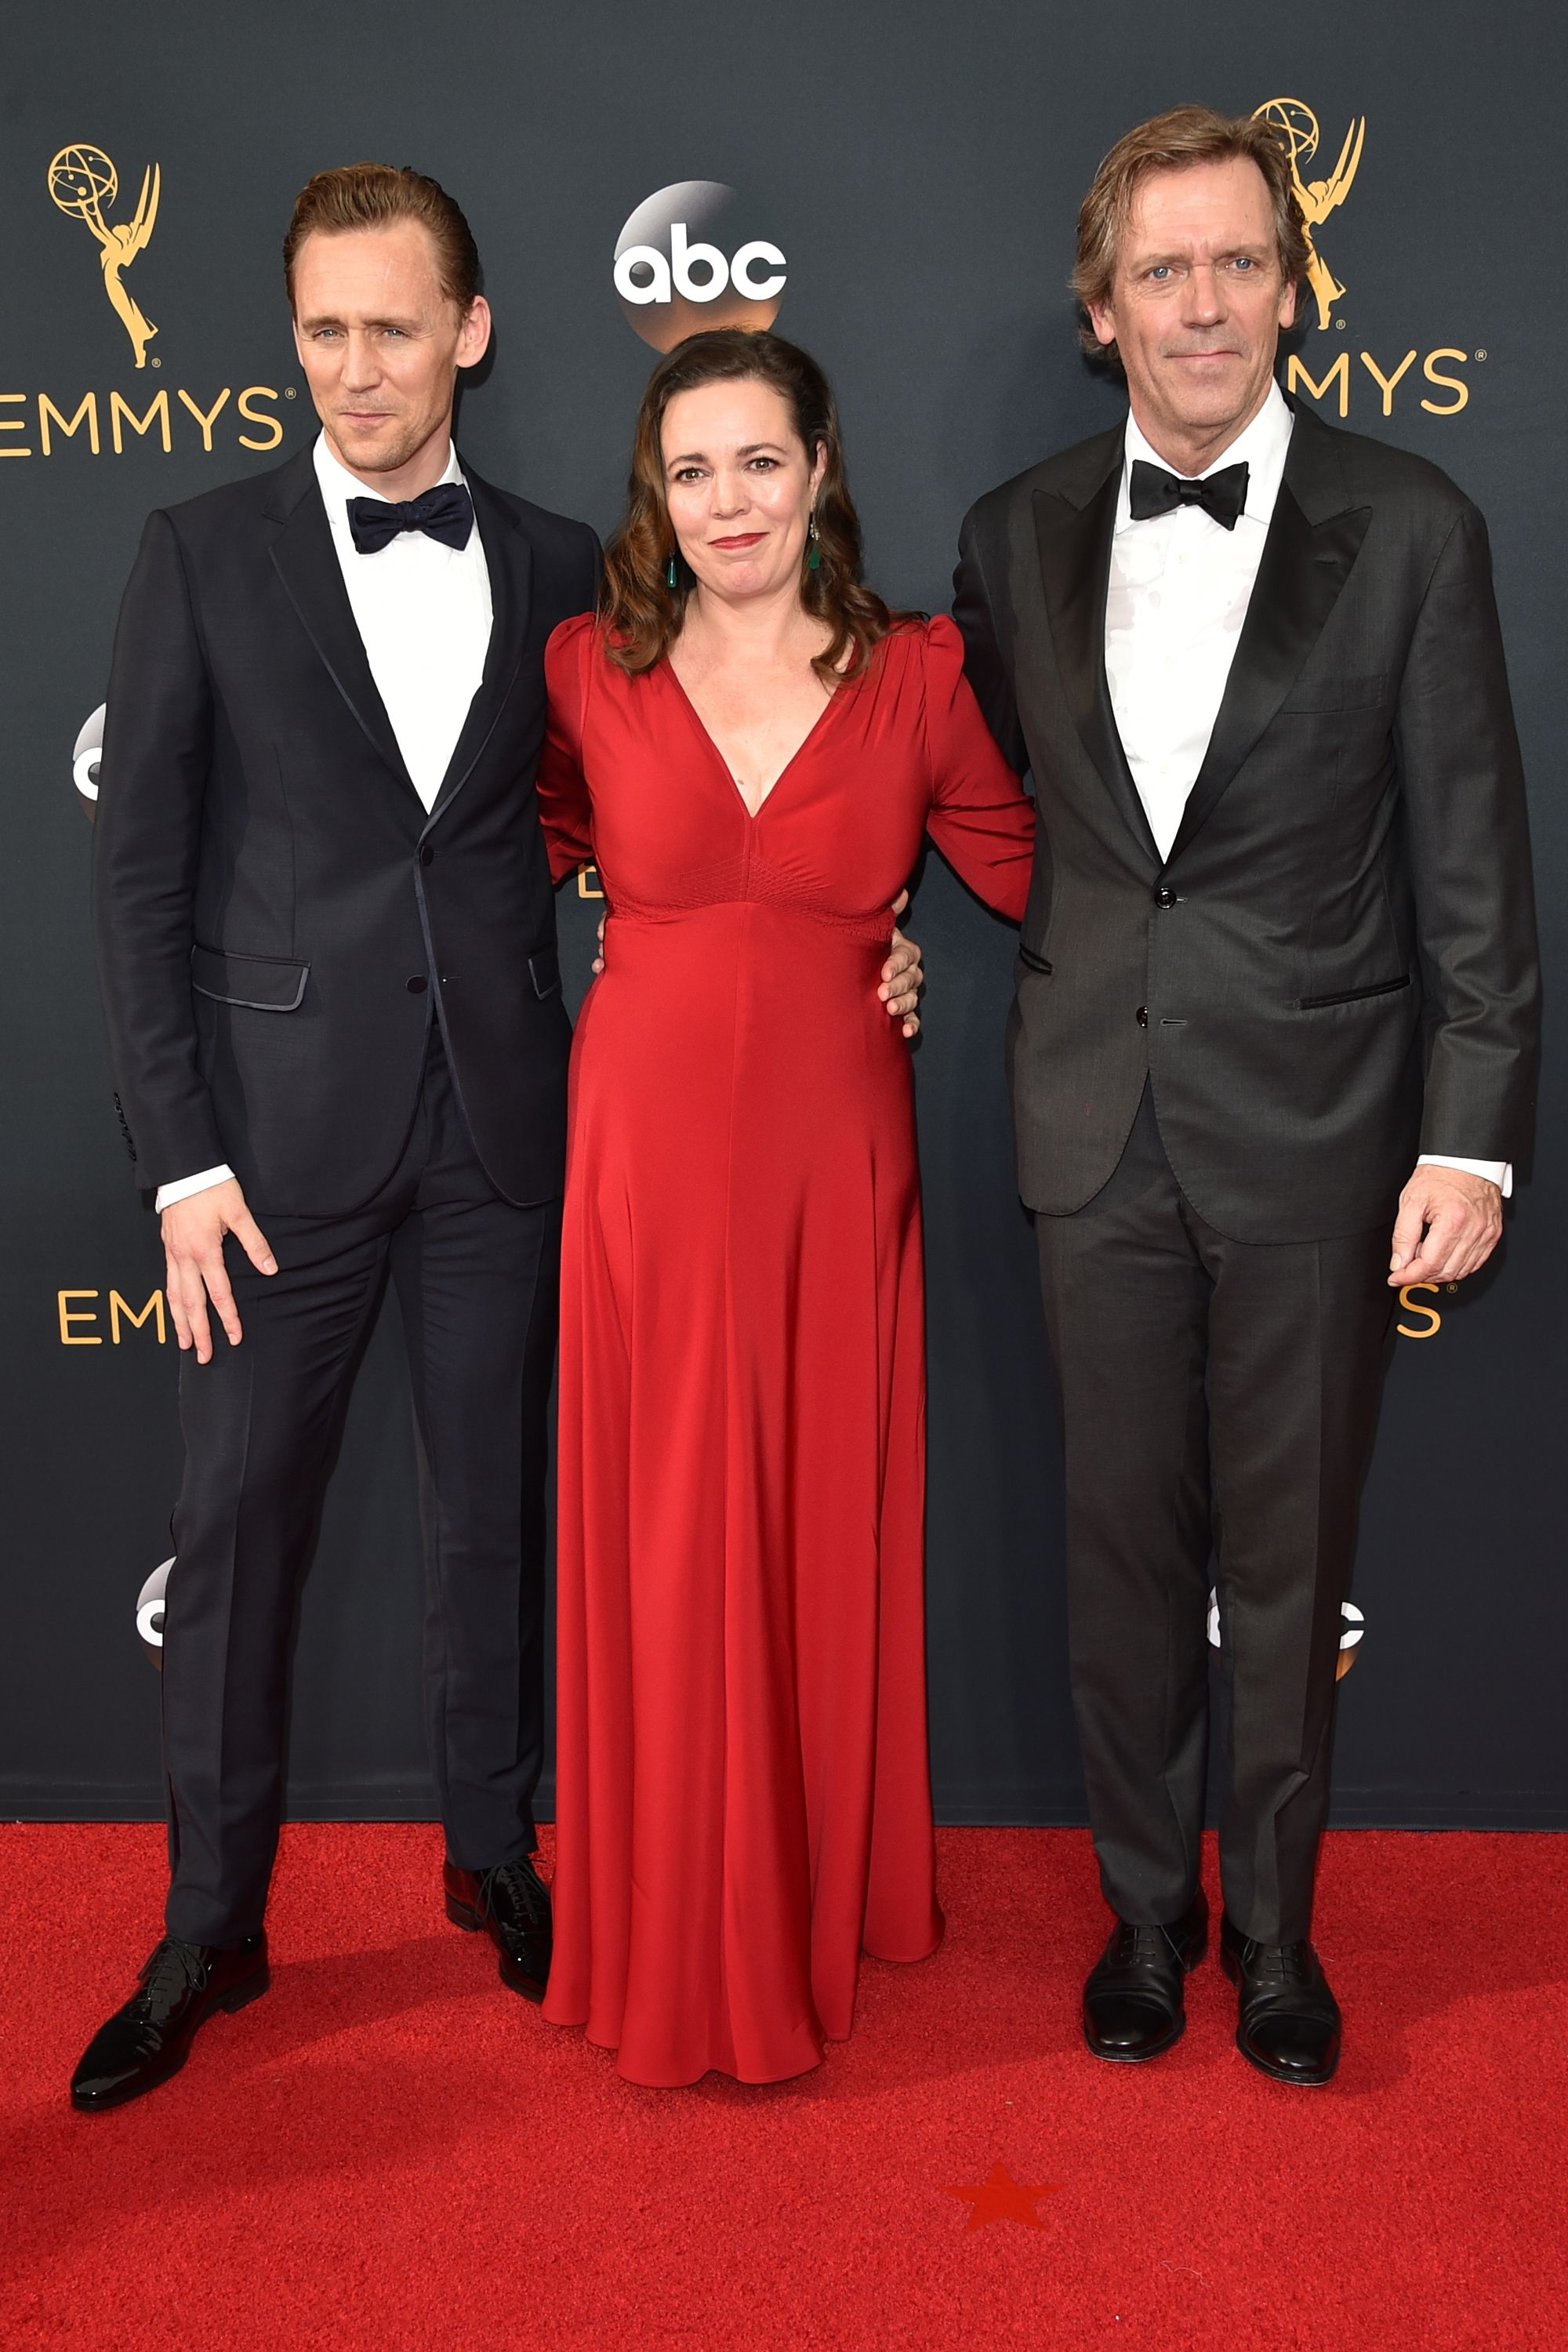 The actress chose a deep-red gown paired with diamond and emerald drop earrings for the Emmys, in which she was nominated for her role in The Night Manager .